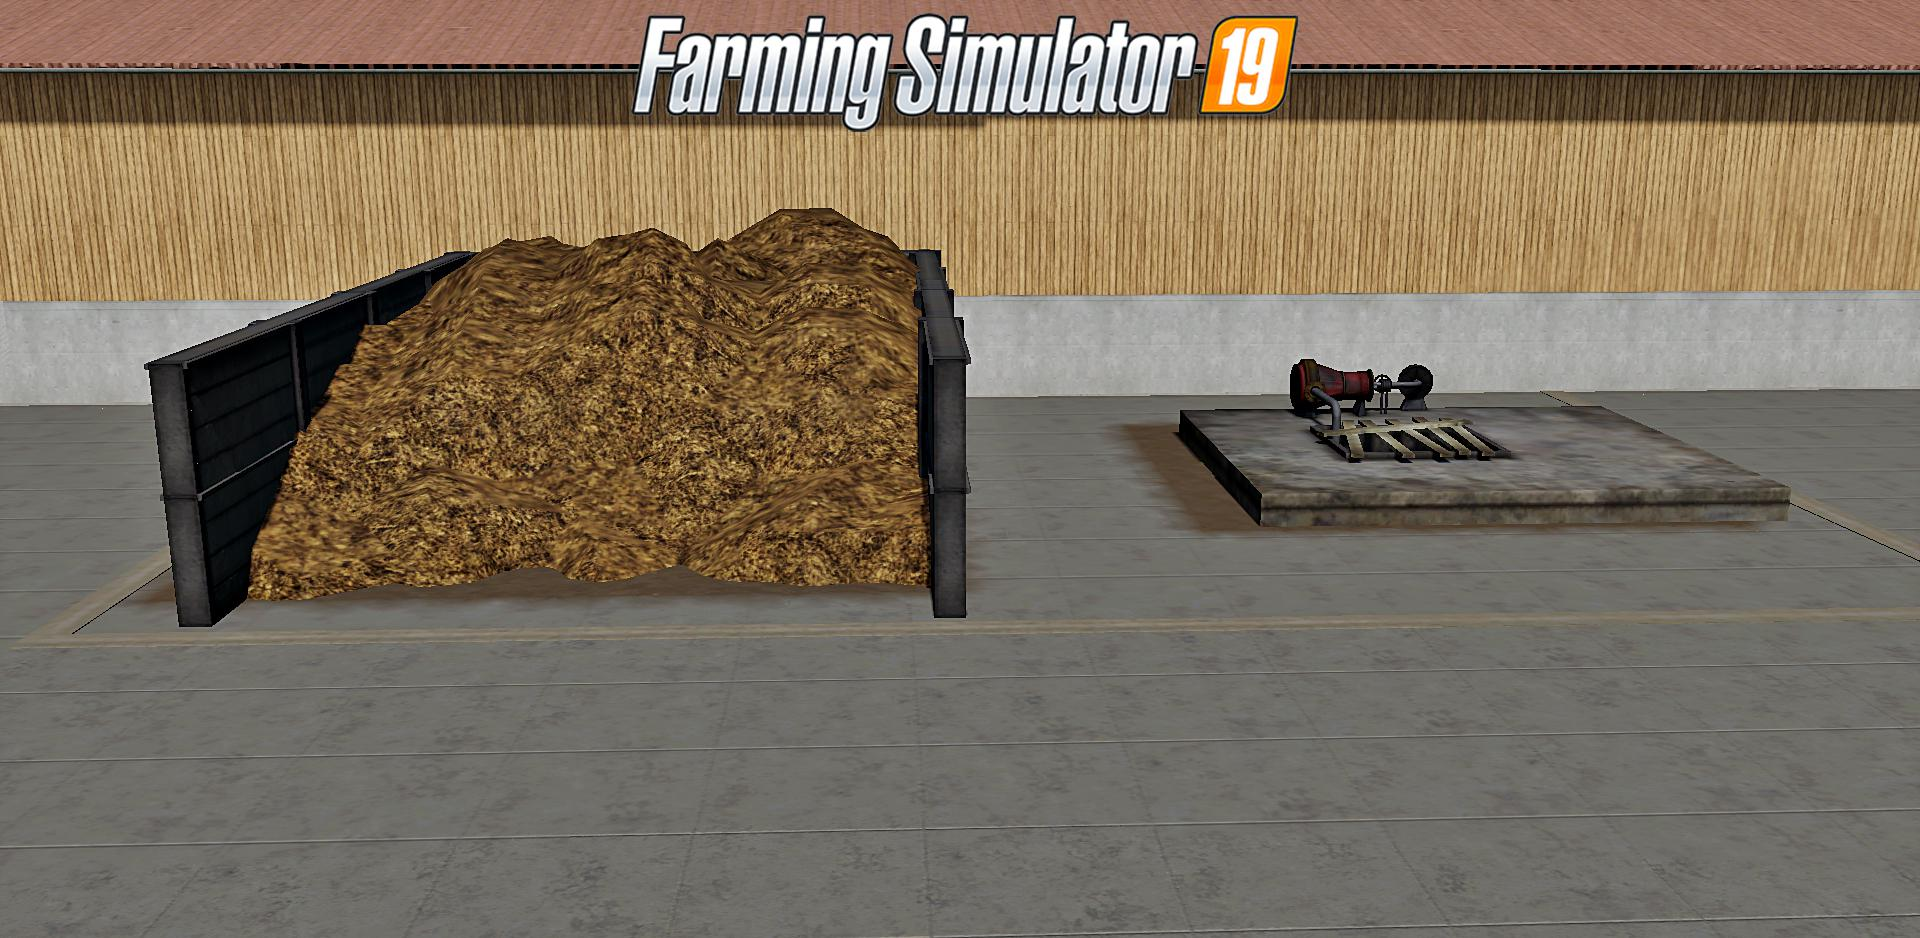 PLACEABLE Buy Liquid manure and manure v 1.0